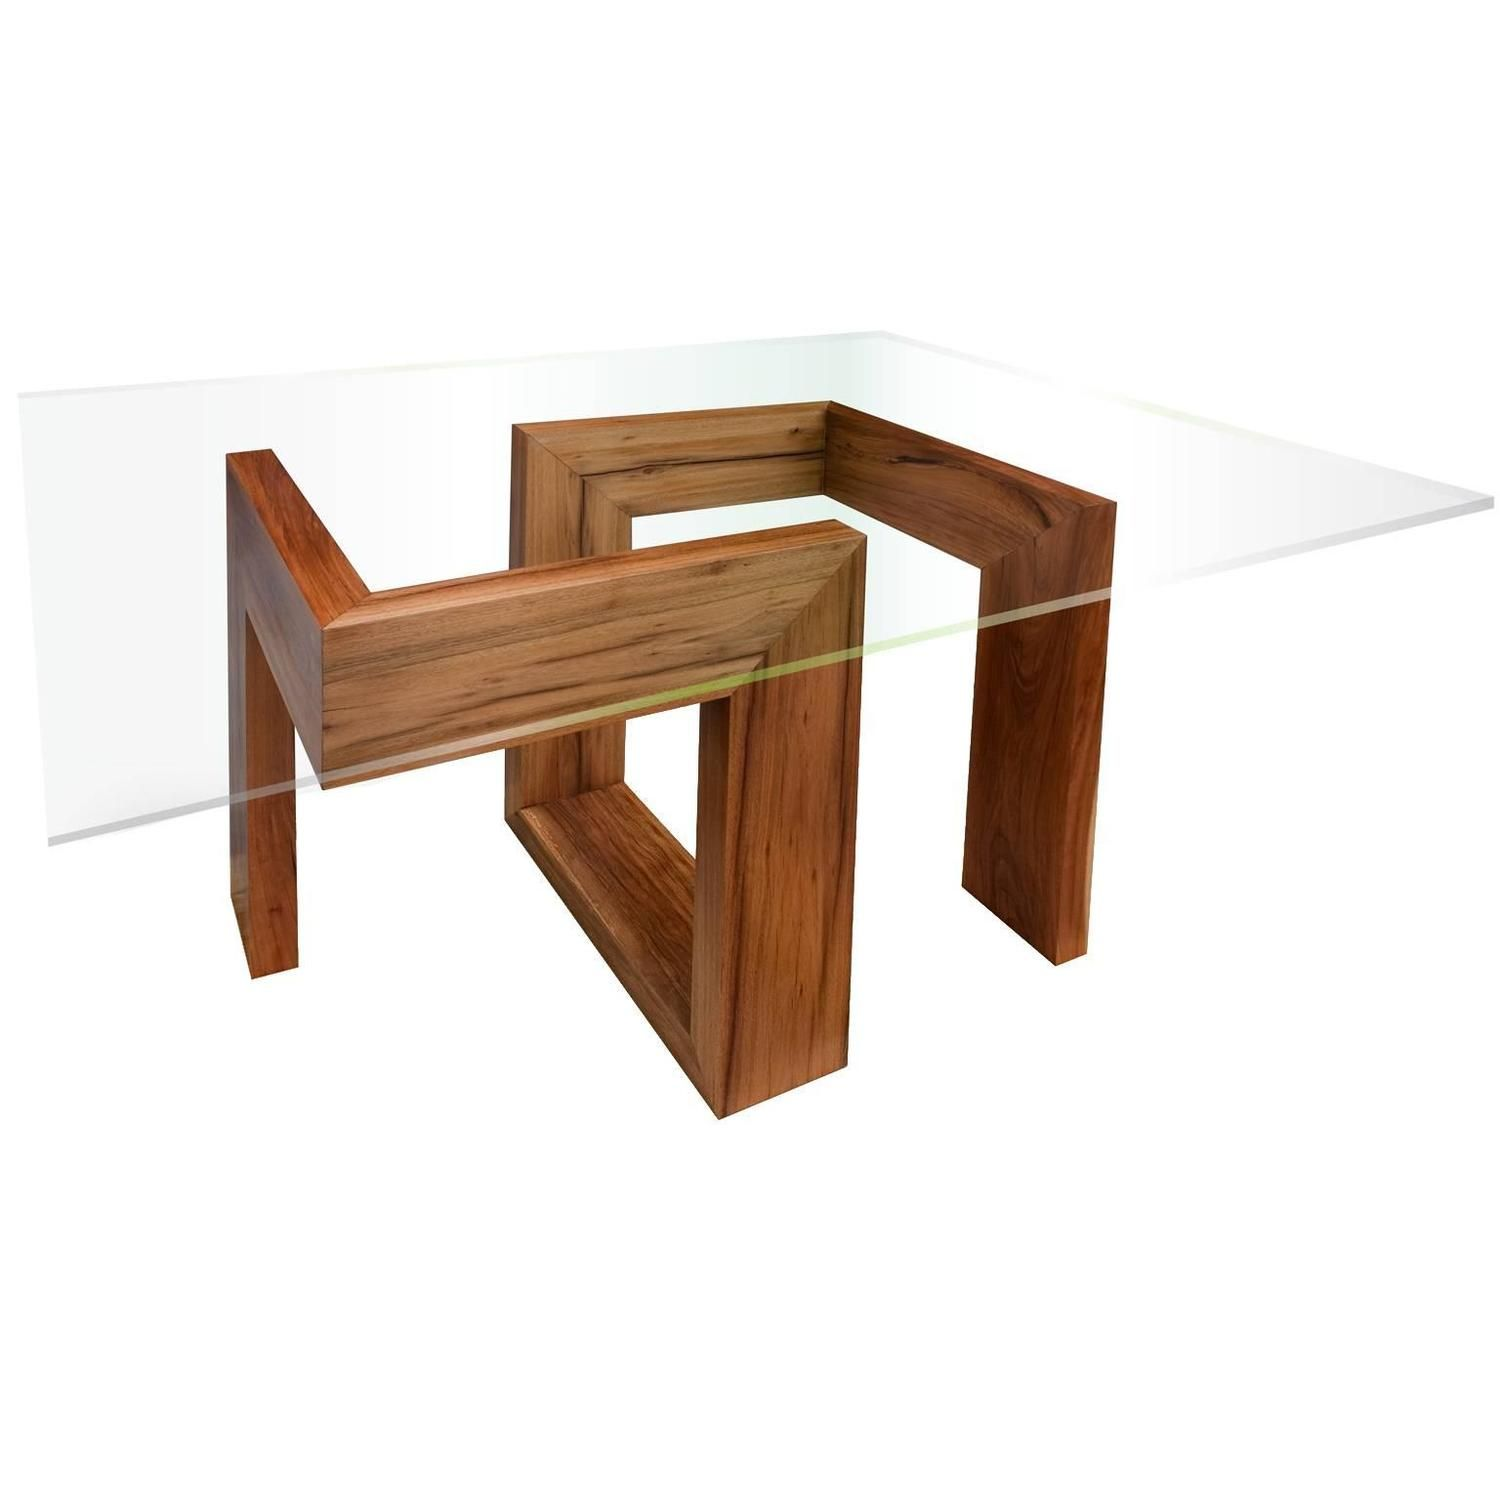 Couchtisch Bauhaus Pin By Jocky Tan On Today Timber Table Furniture Table